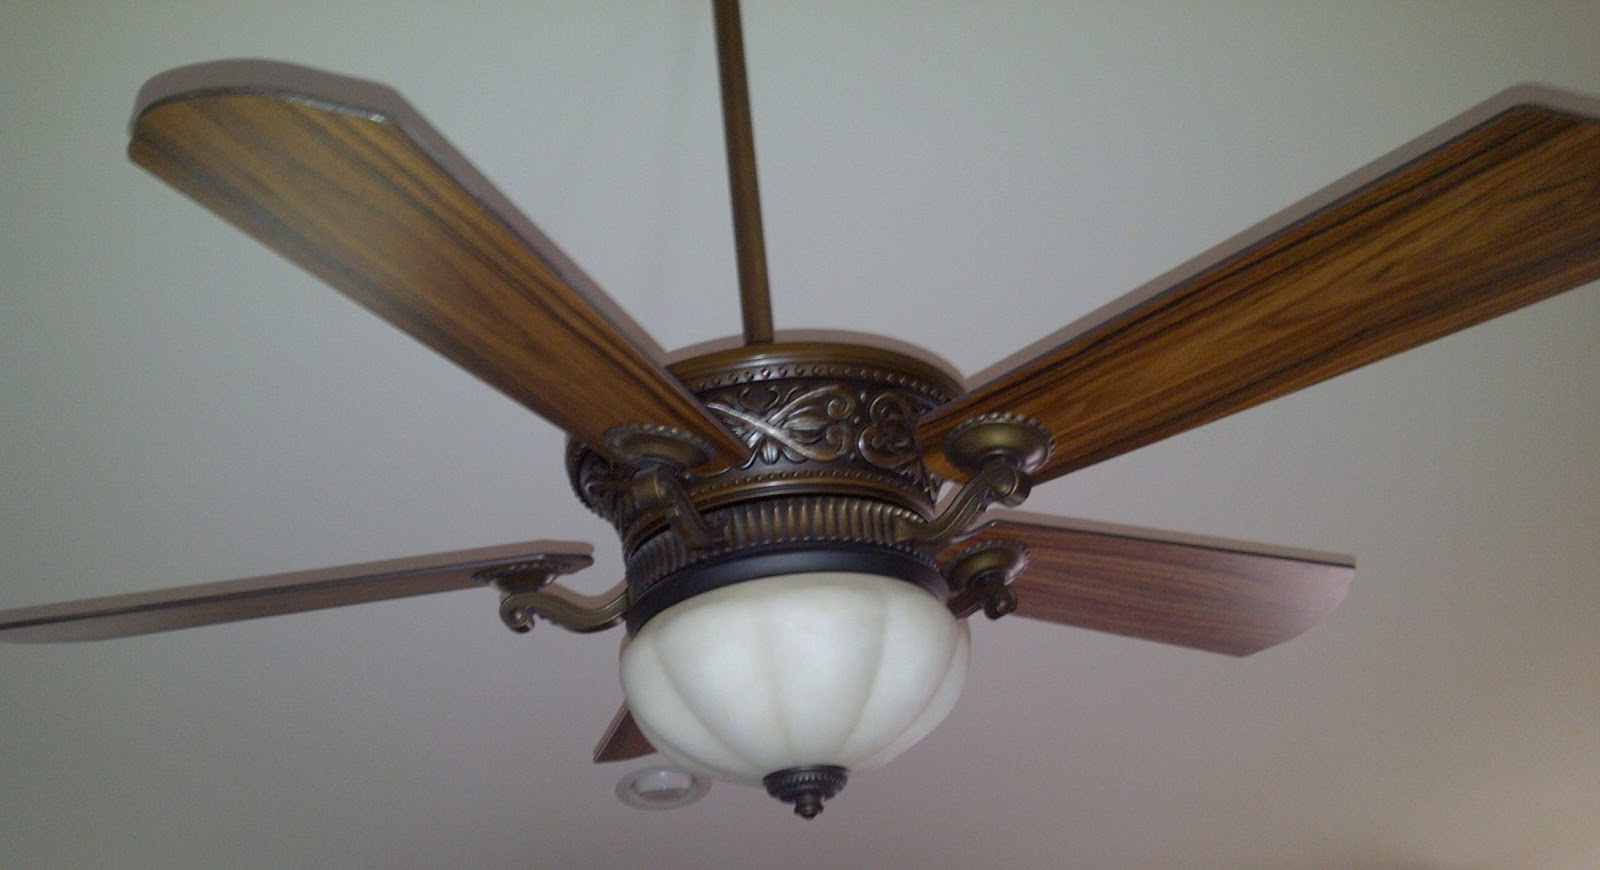 Ceiling Fan Upgrade: Install a Ceiling Fan With Uplight and Remote ...